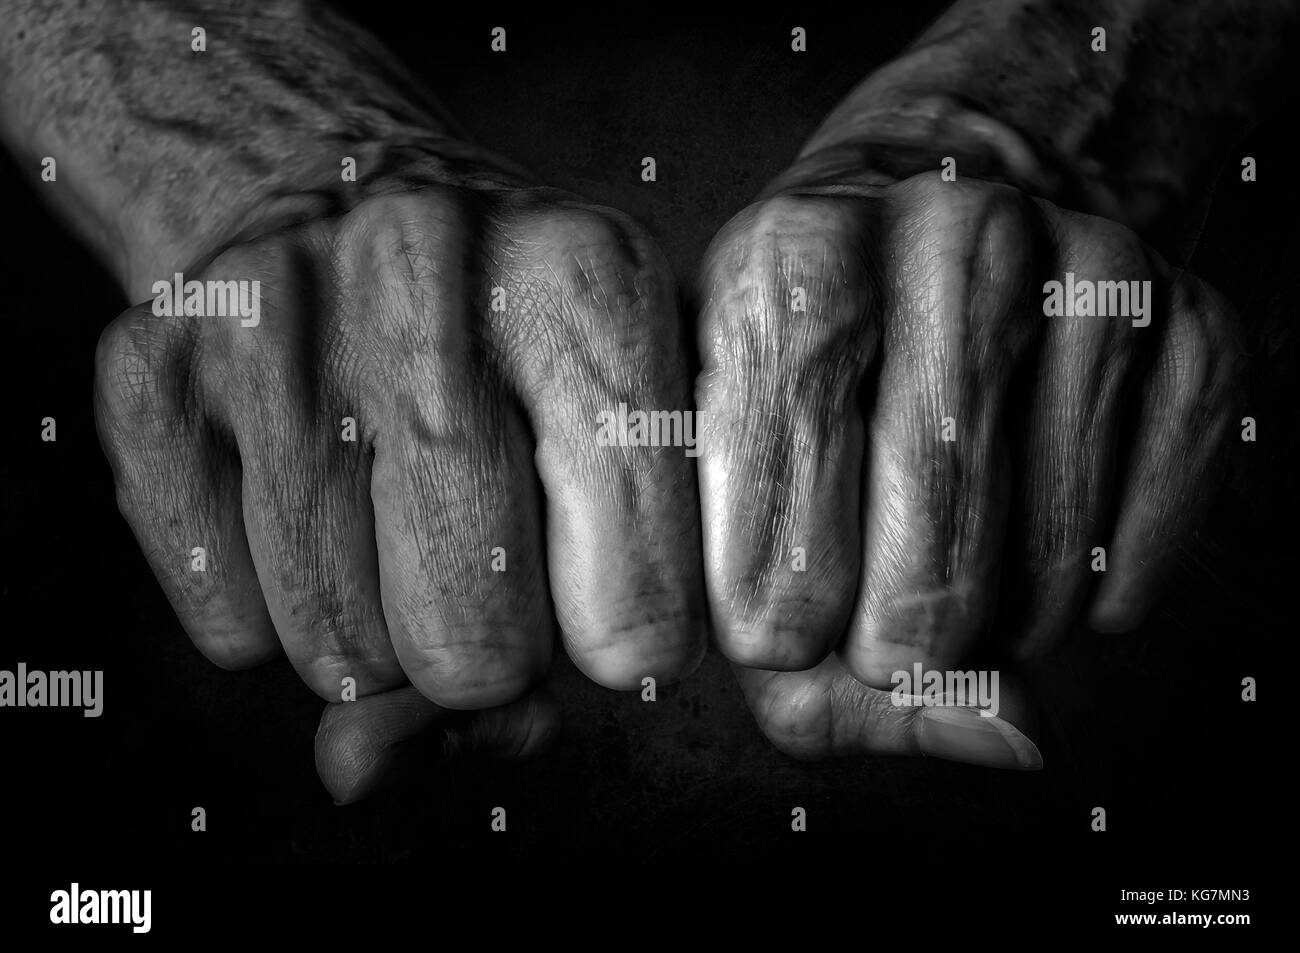 Black vs mature fist